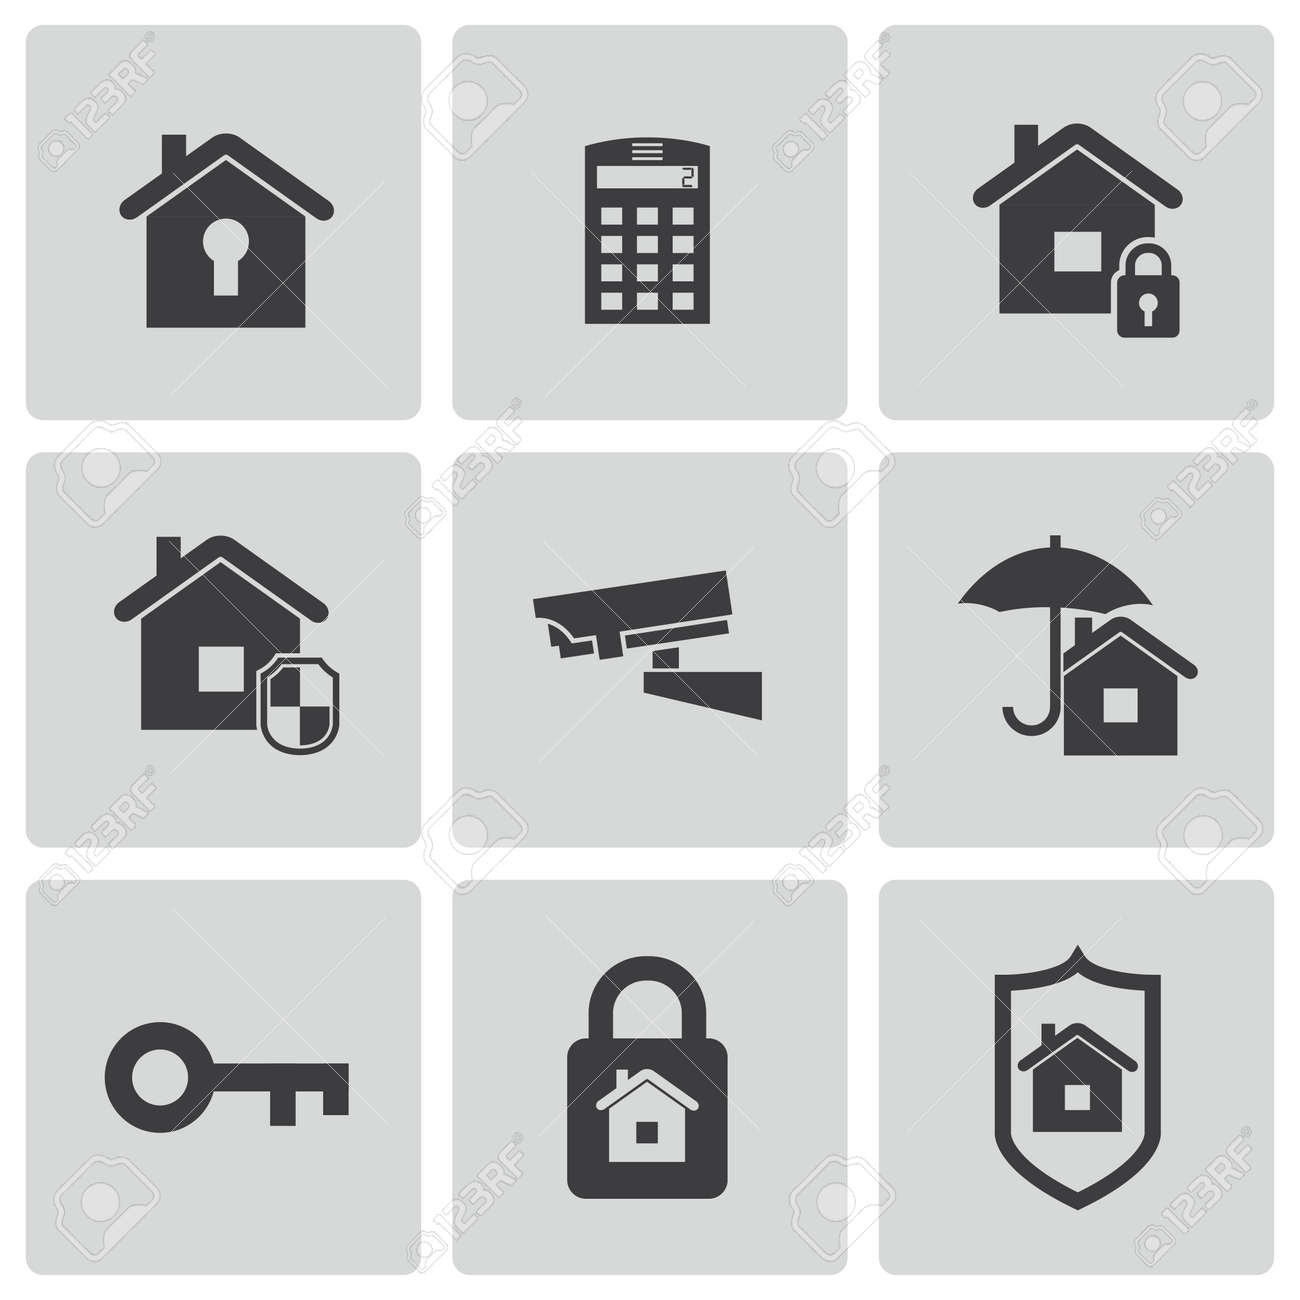 Vector black home security icons set - 23398610